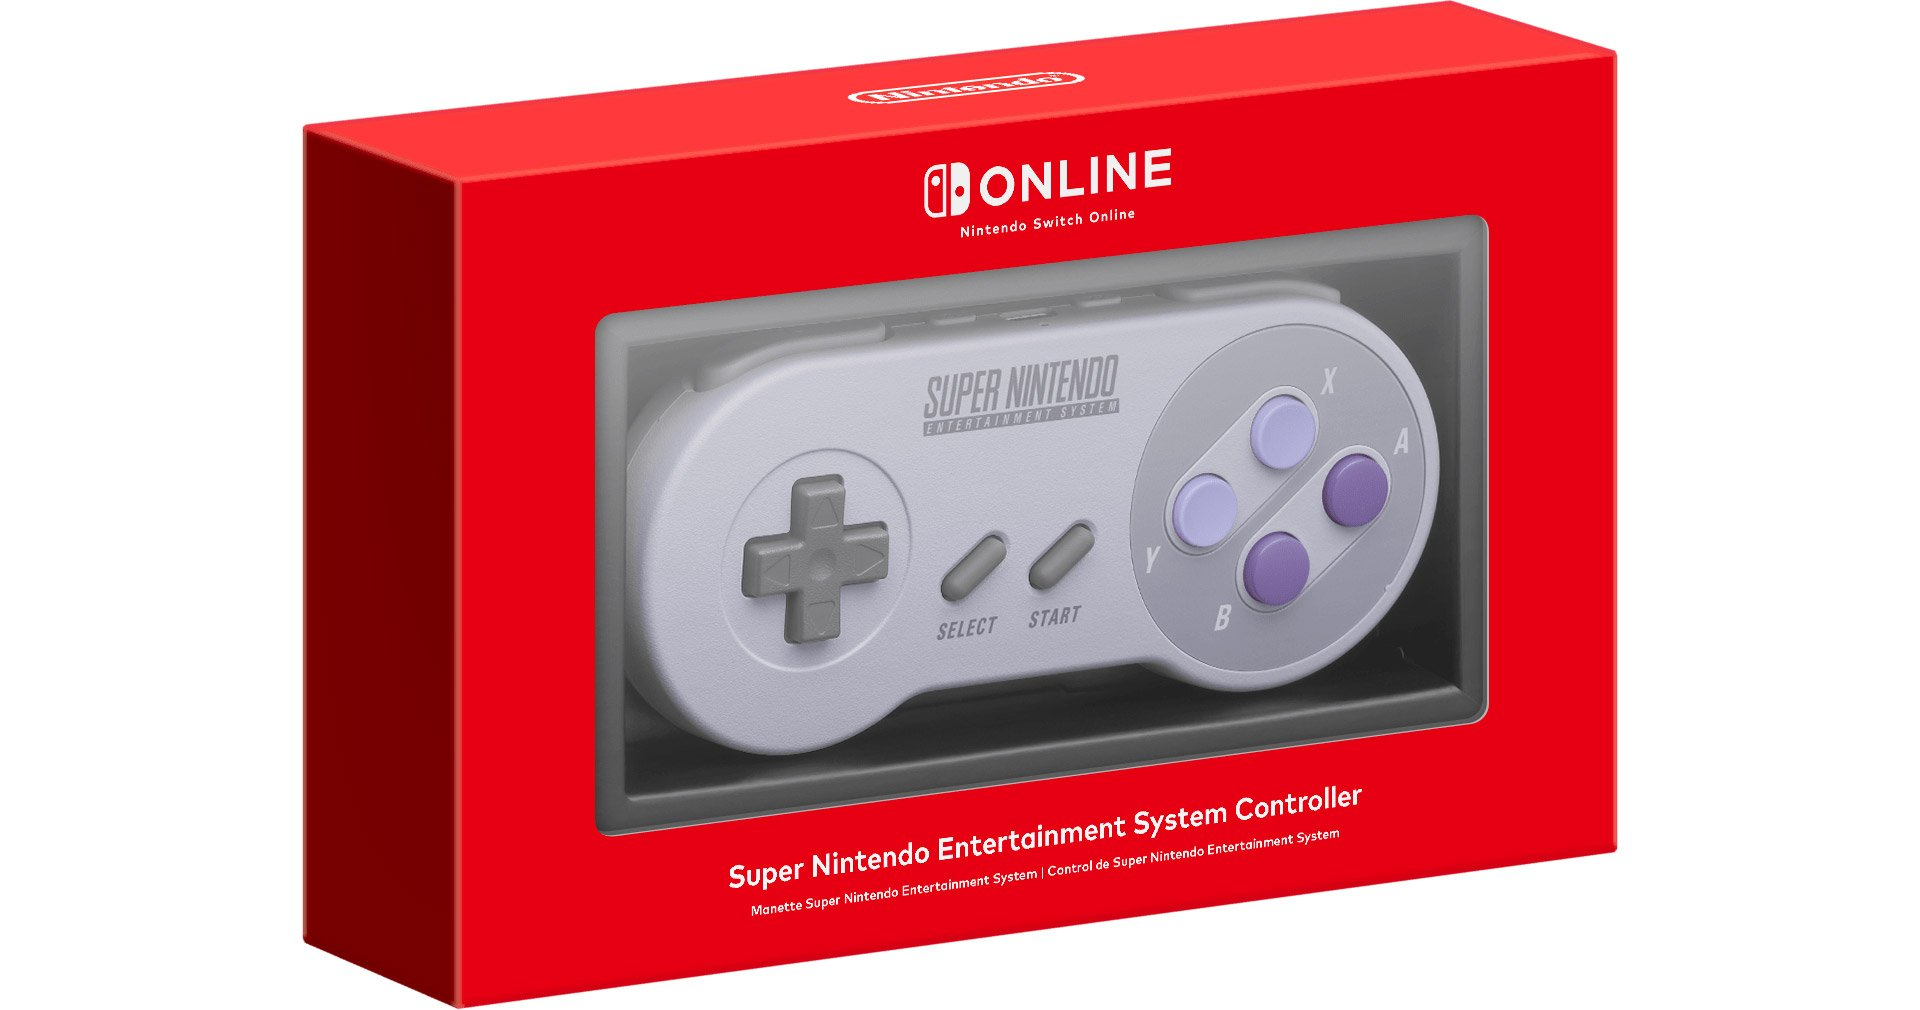 Nintendo Switch Online SNES Controller in the box